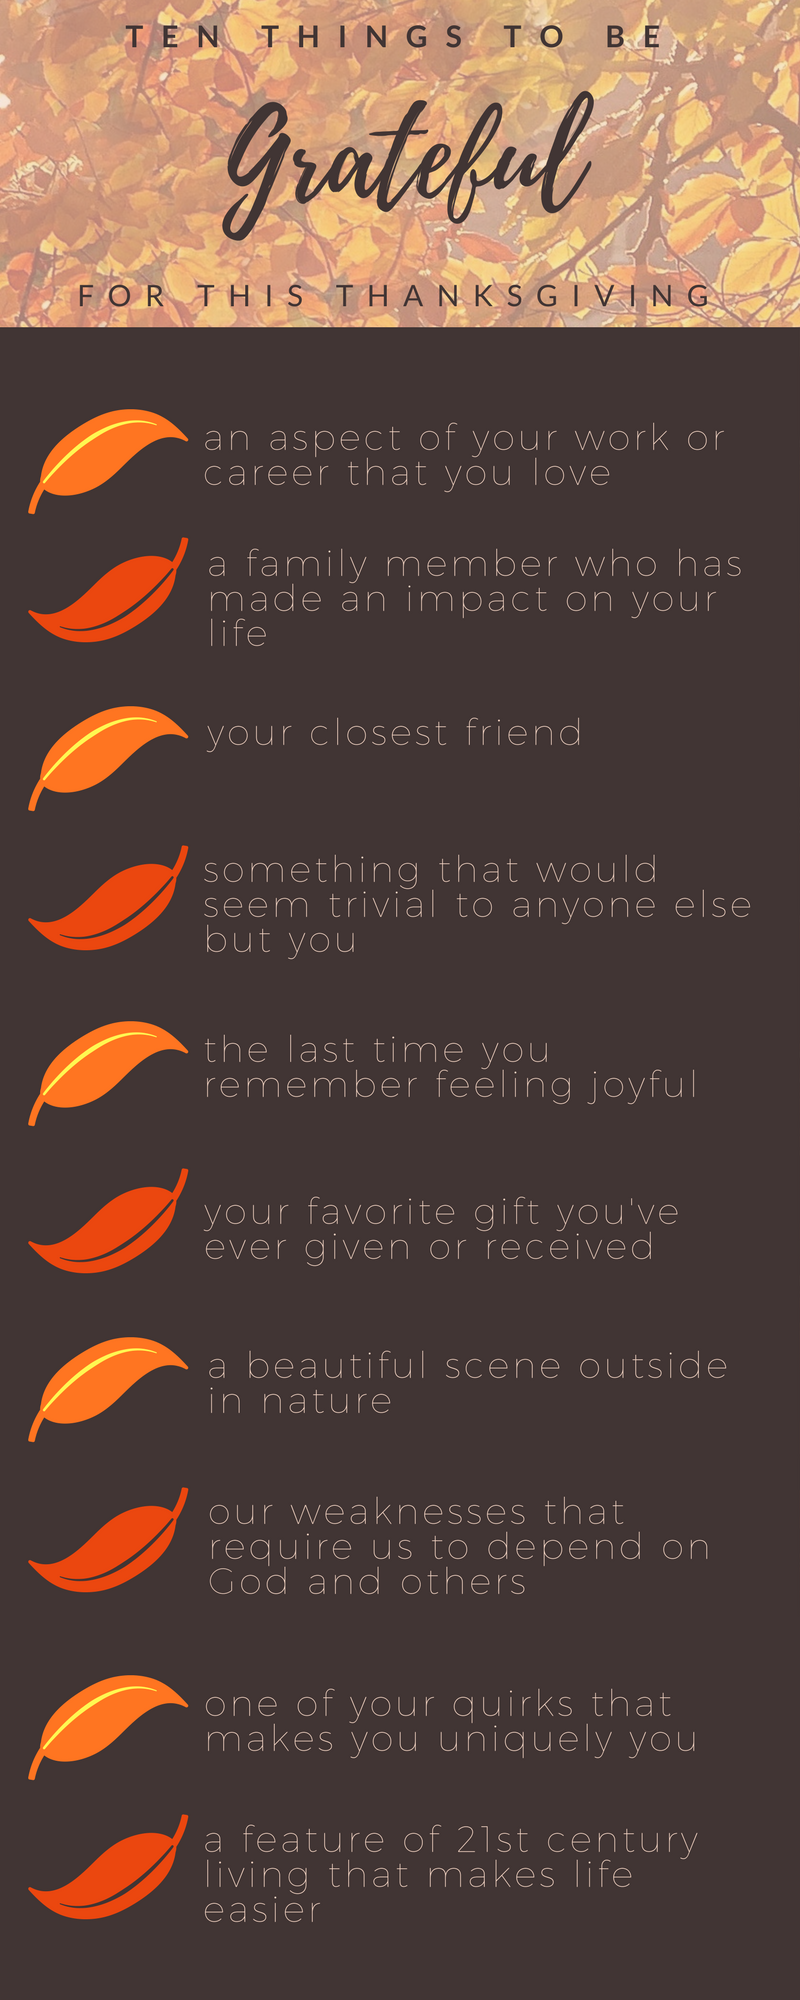 infographic_give_thanks_thanksgiving_journal_prompt_restored_hope_ann_arbor_novi_counseling_therapy_christian.png